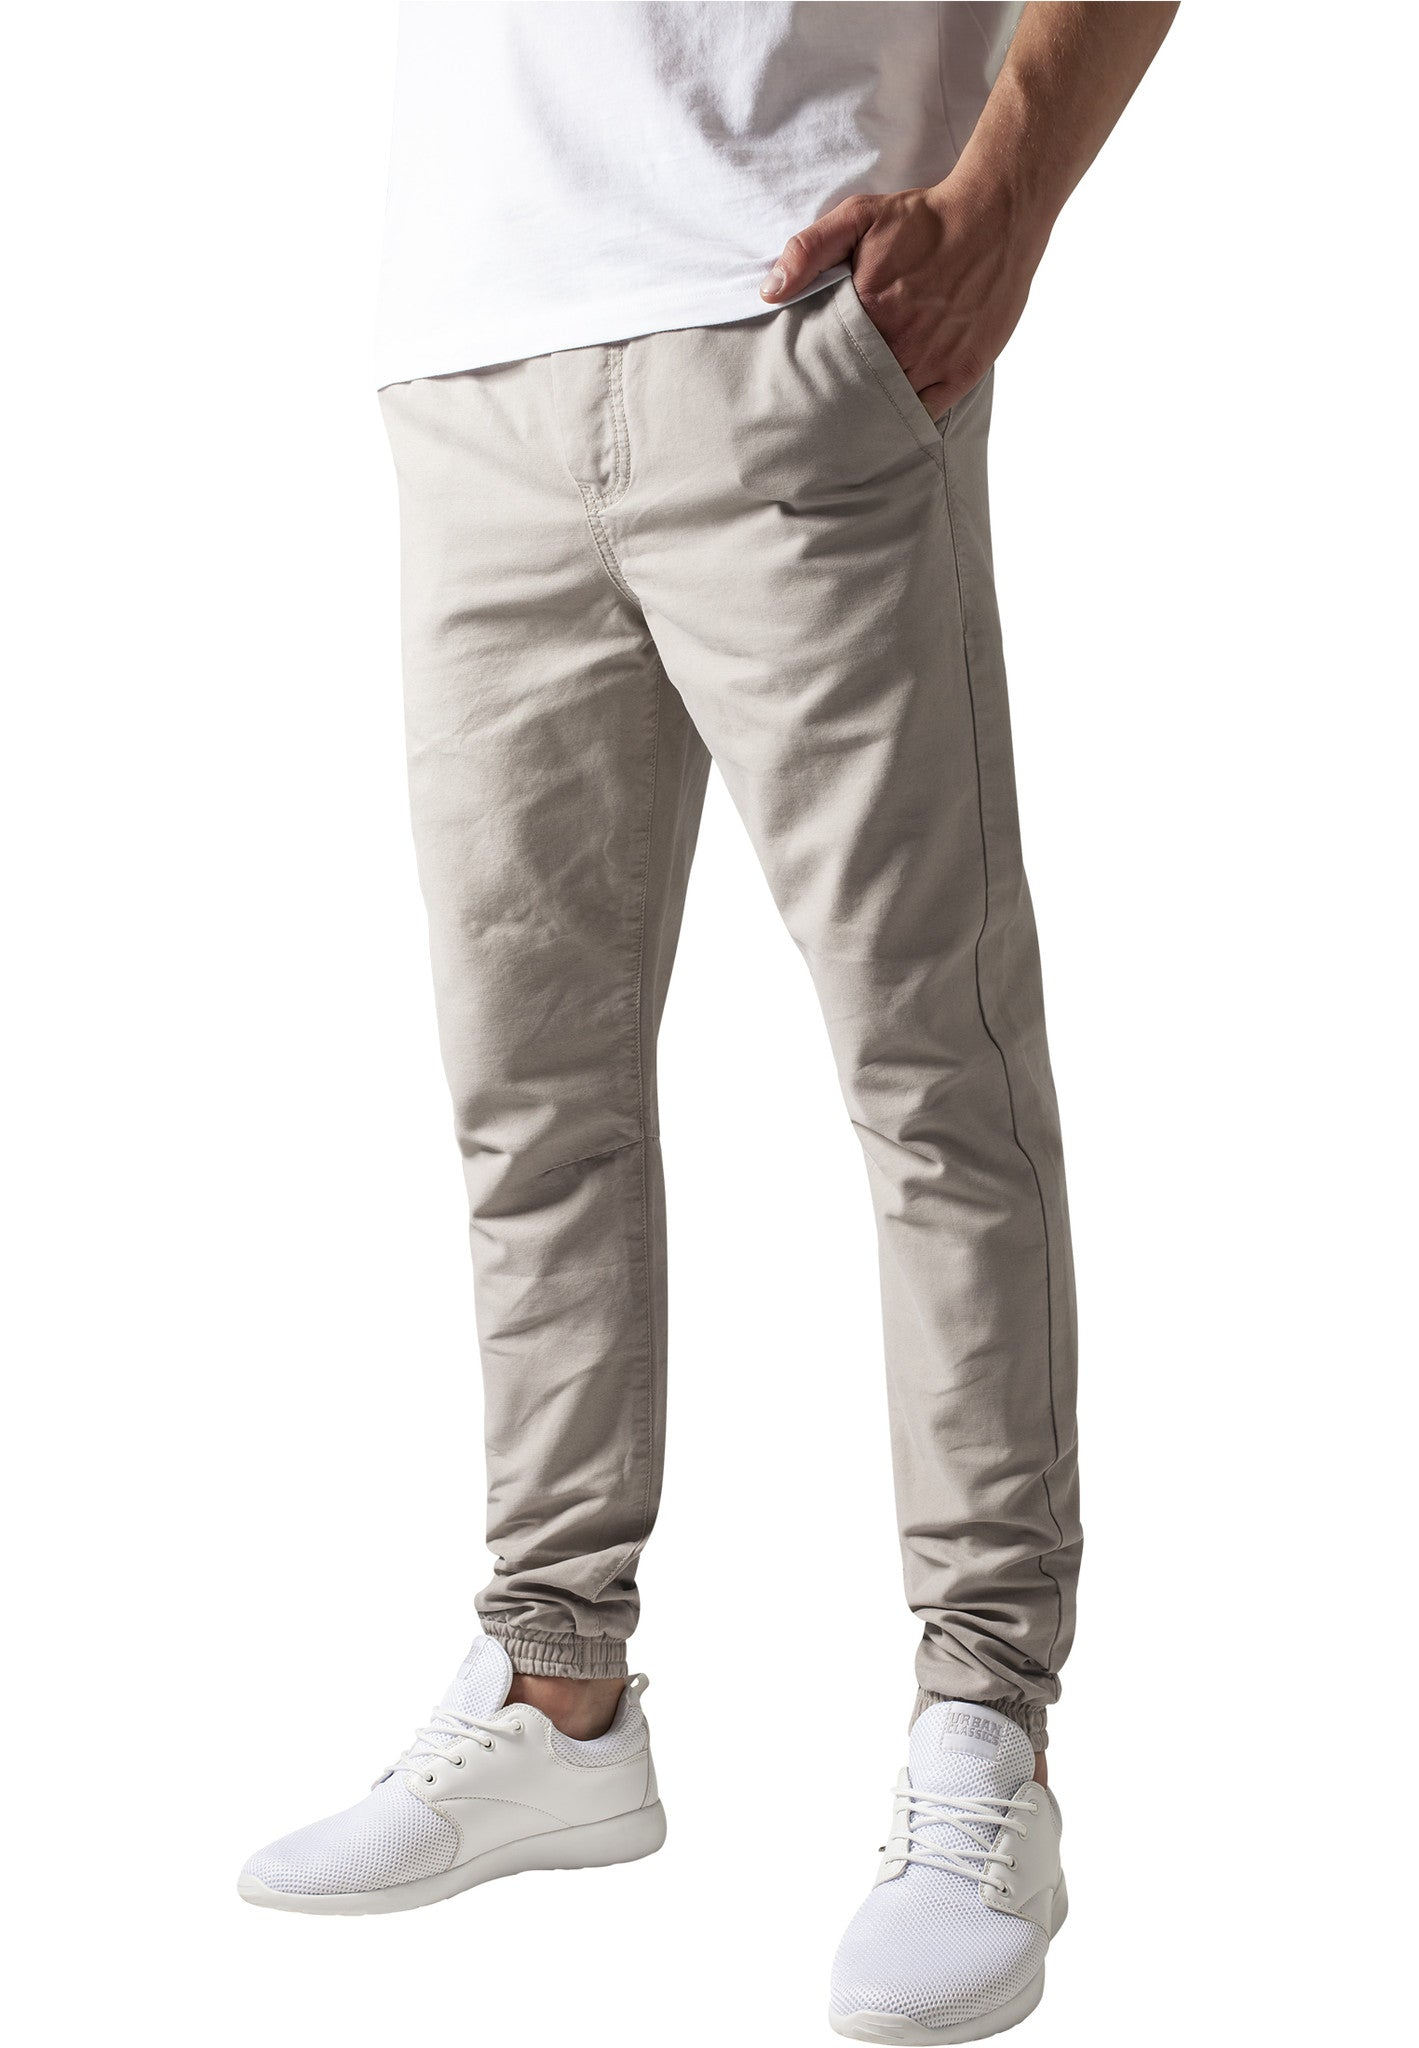 Washed Canvas Jogging Pants TB1434 Beige